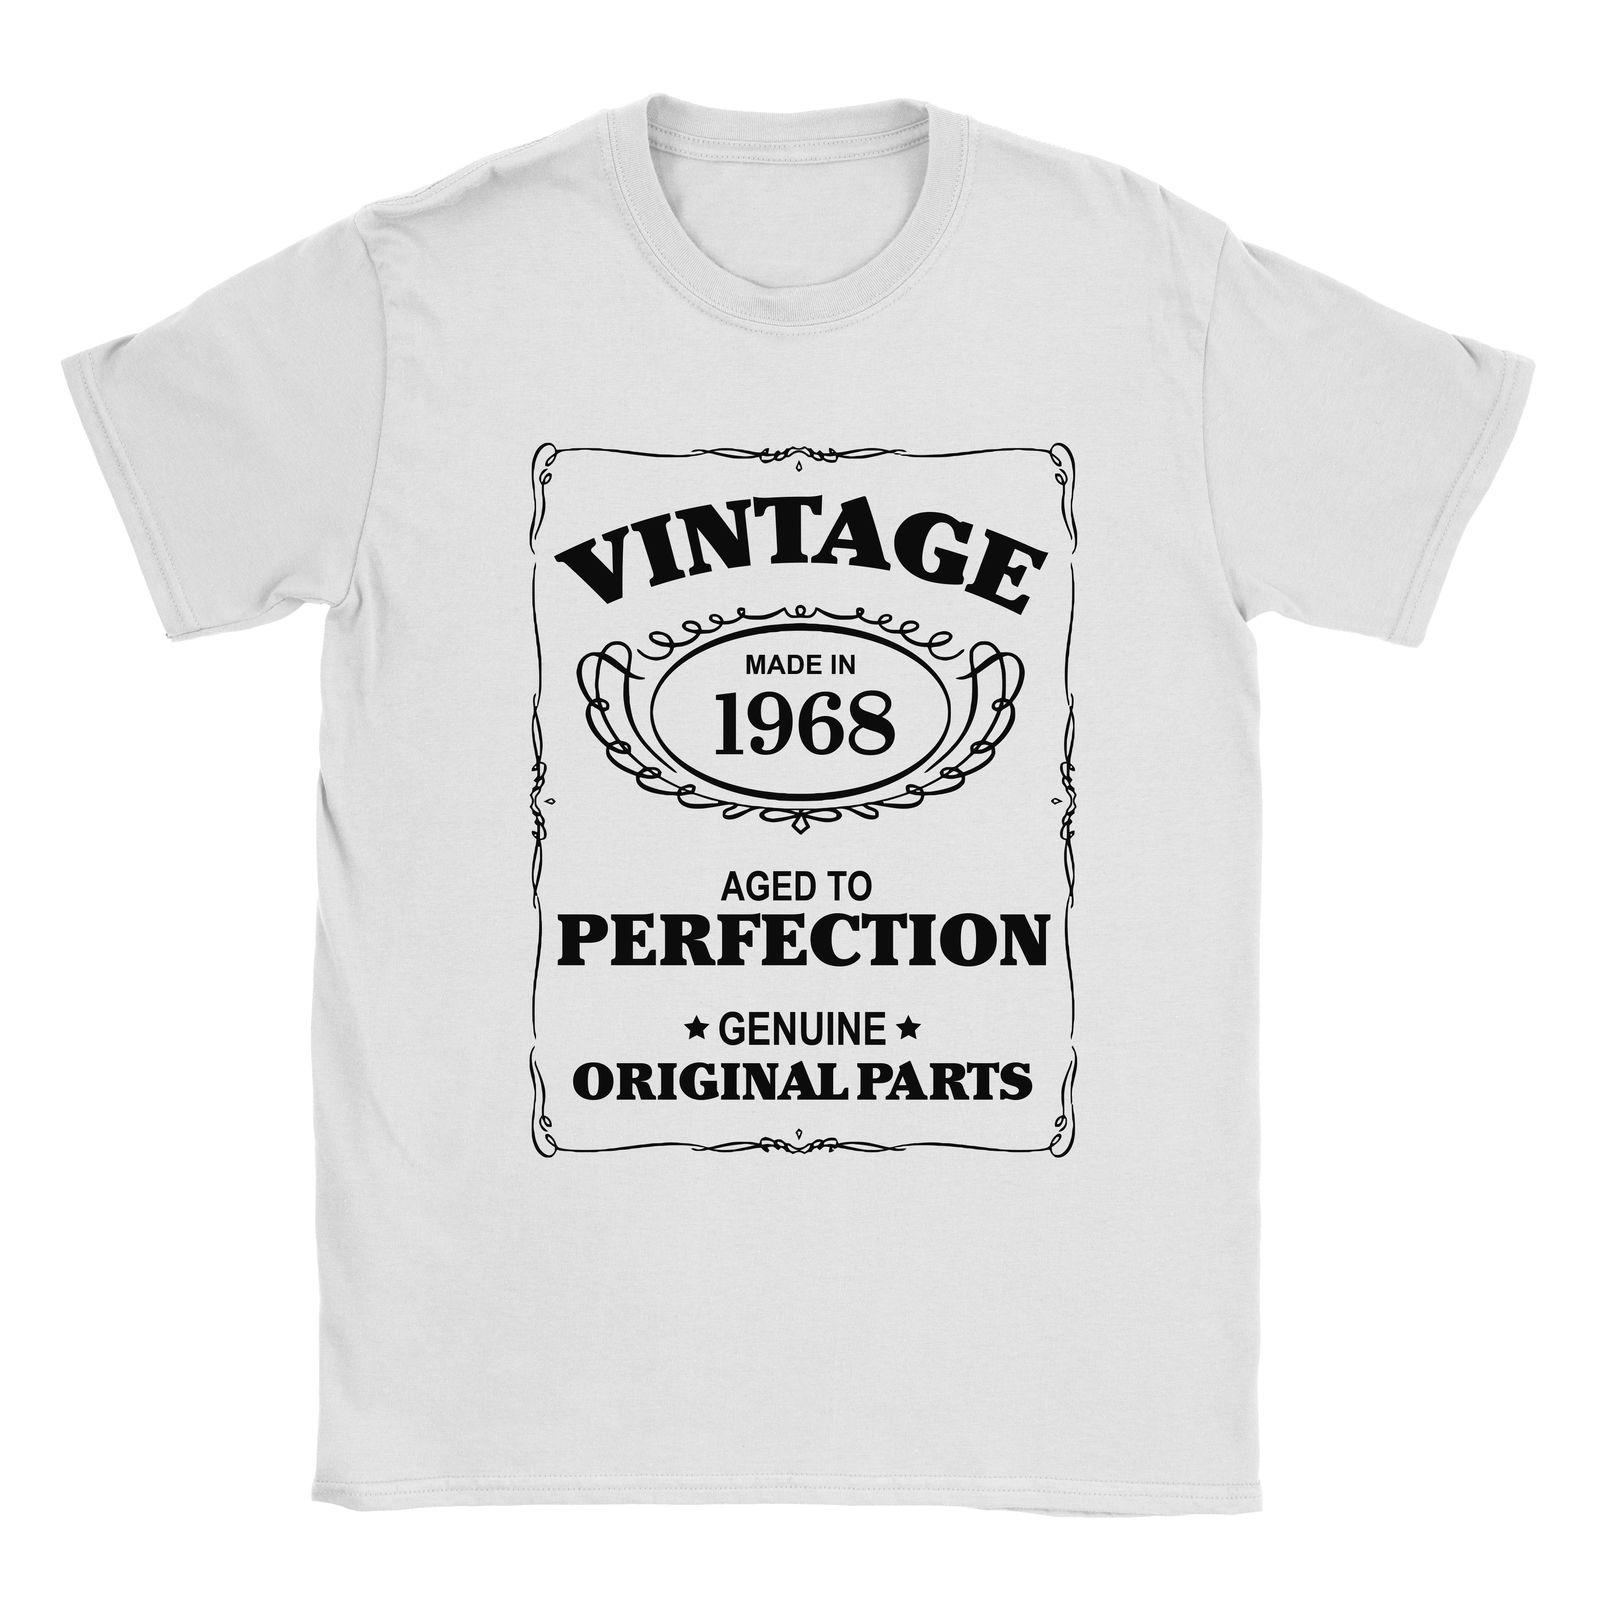 50th Birthday T Shirt Born In 1968 Mens Present Gift Age Aged To Perfection Funny Unisex Casual Designs Make A Tee From